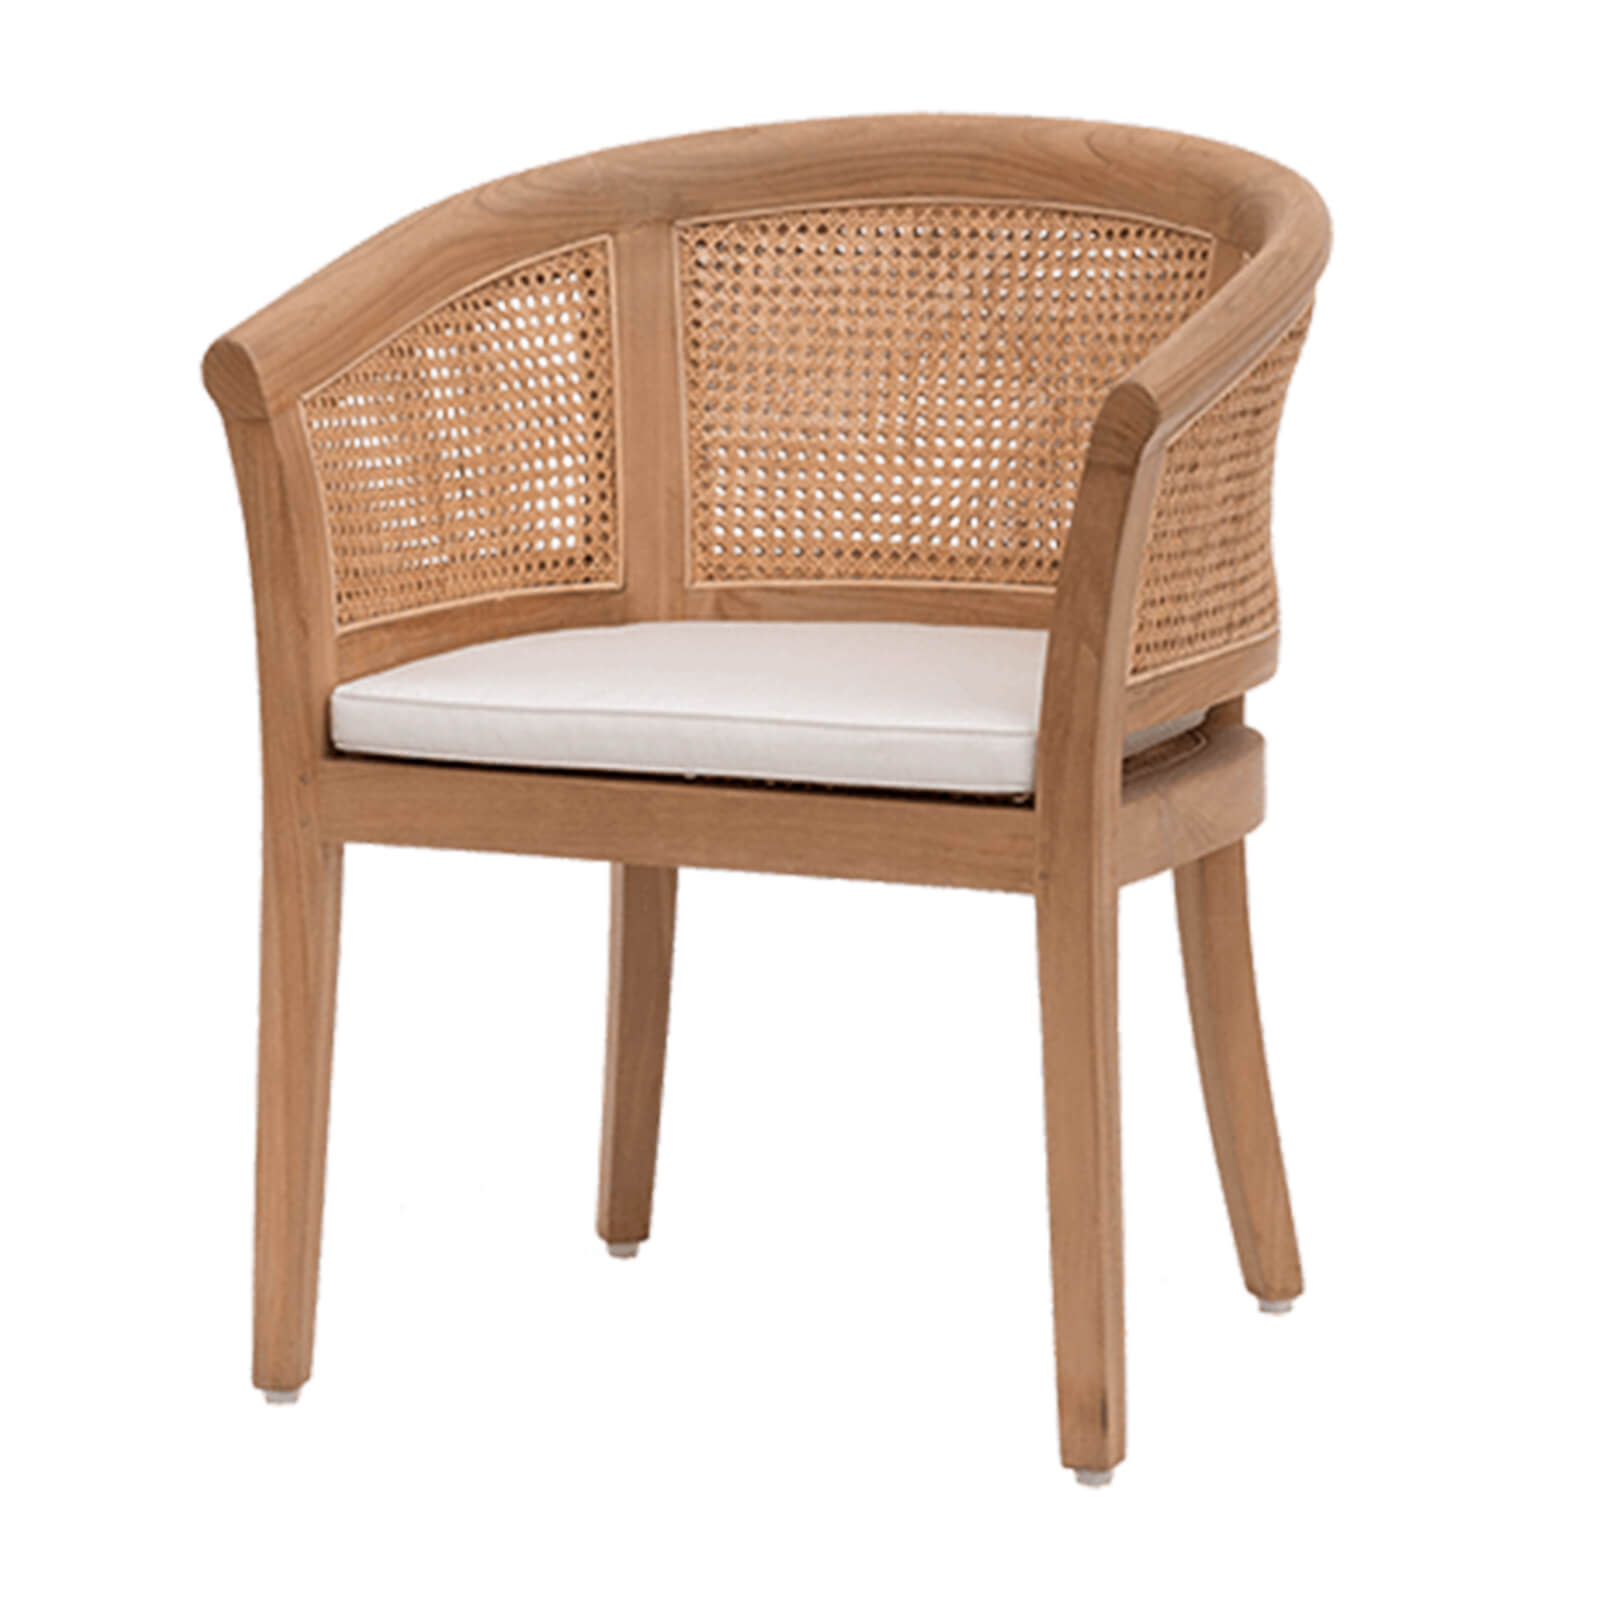 teak and cane dining chair